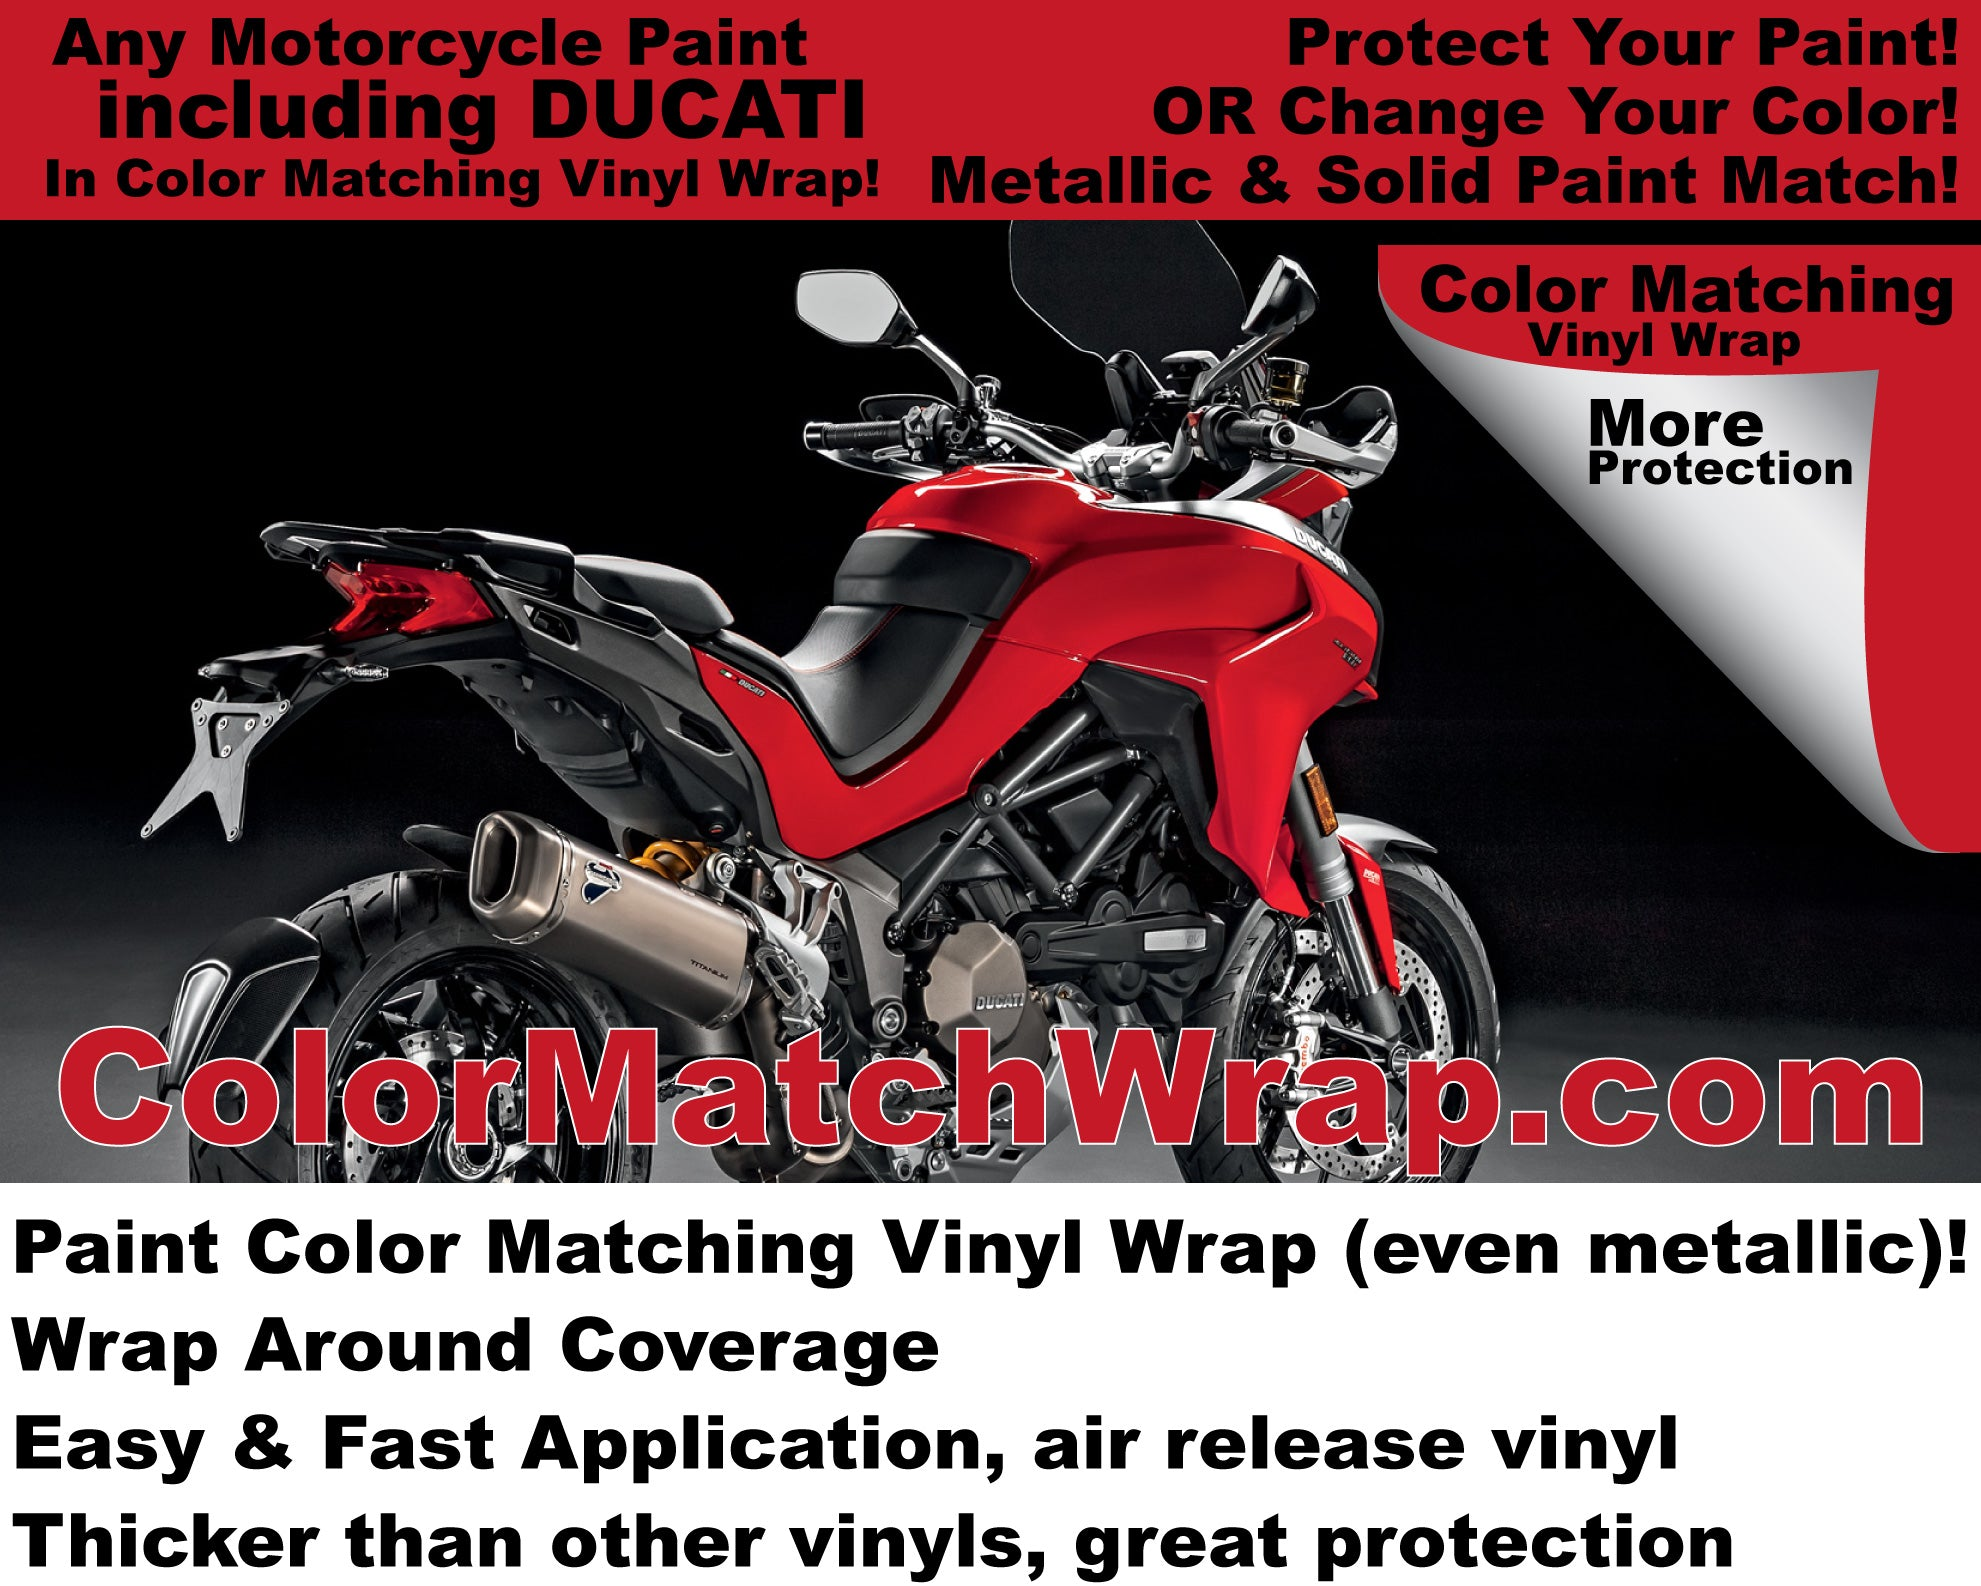 paint color matching vinyl wrap for motorcycles